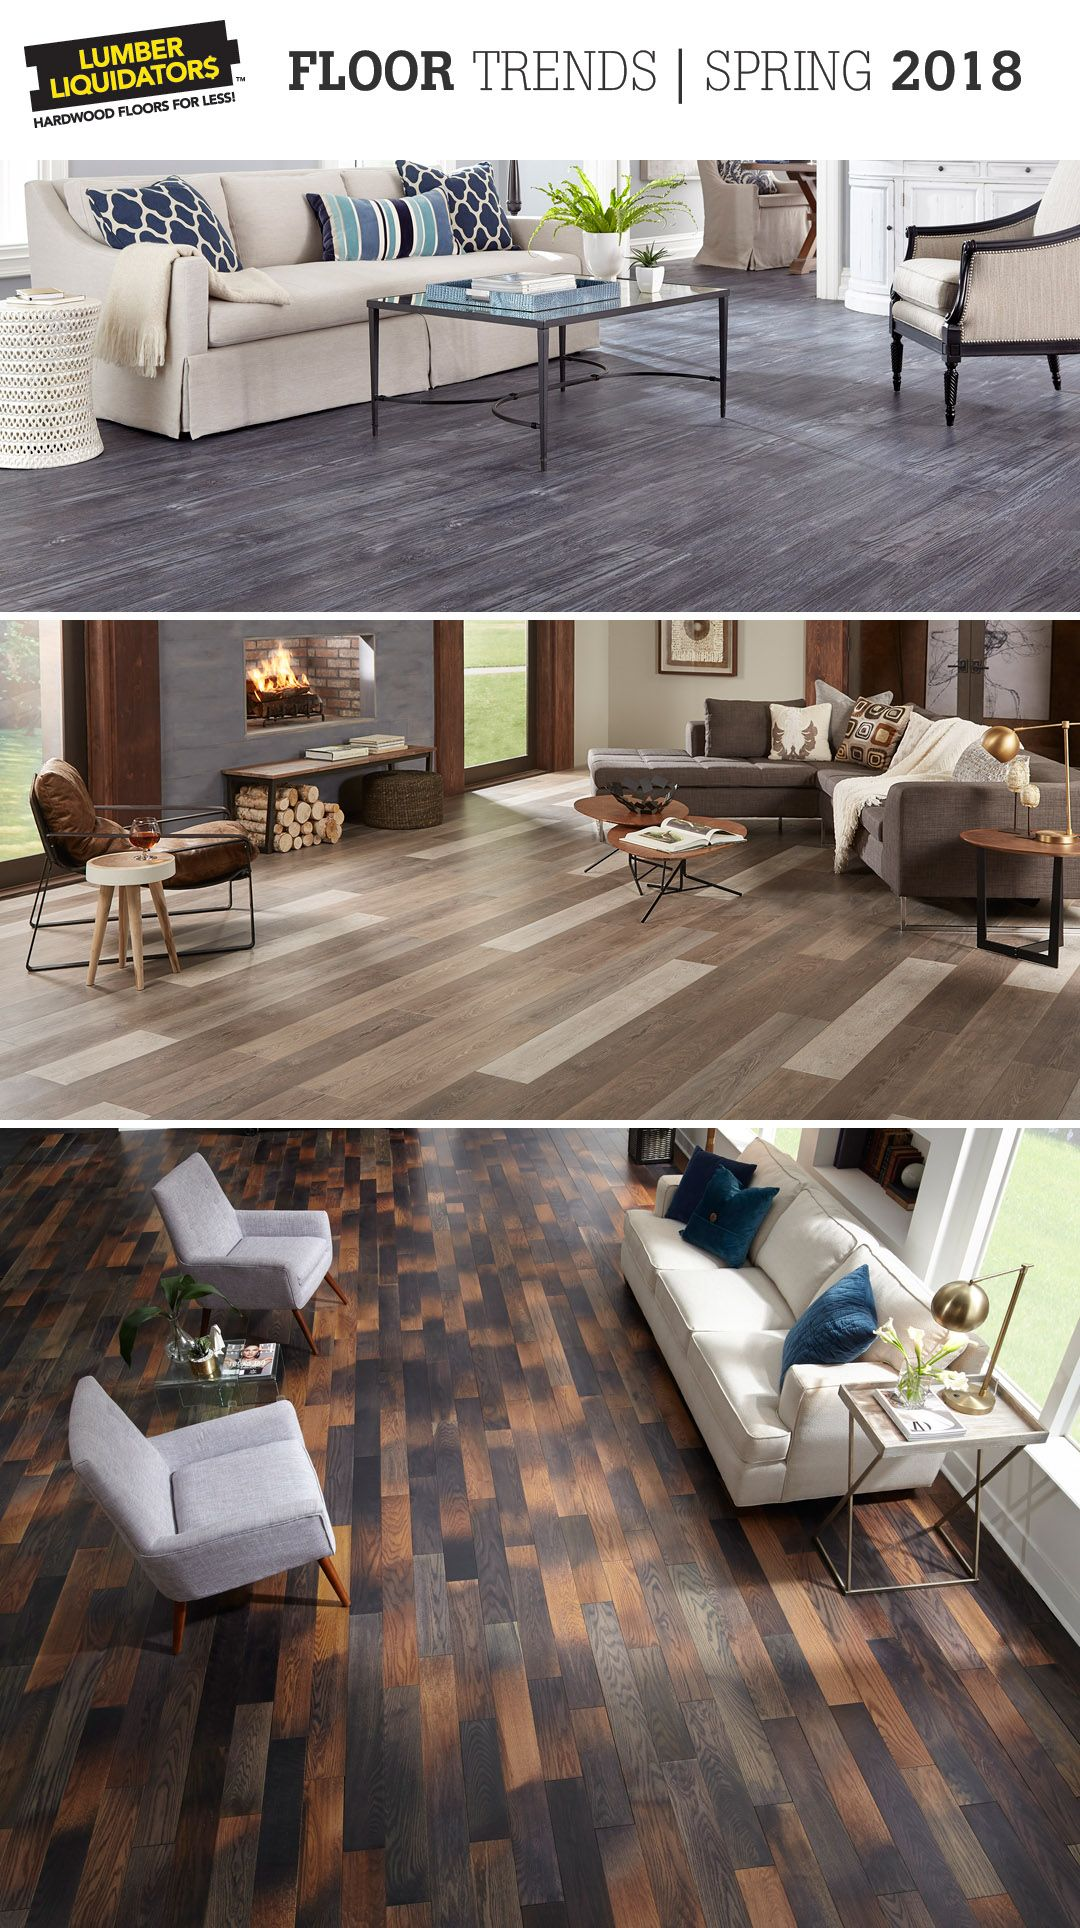 Bring A Fresh Perspective To Your Home This Spring Flooring Season Find Fashion Forward Designs In Hardwo Home Remodeling Cheap Home Decor Living Room Remodel